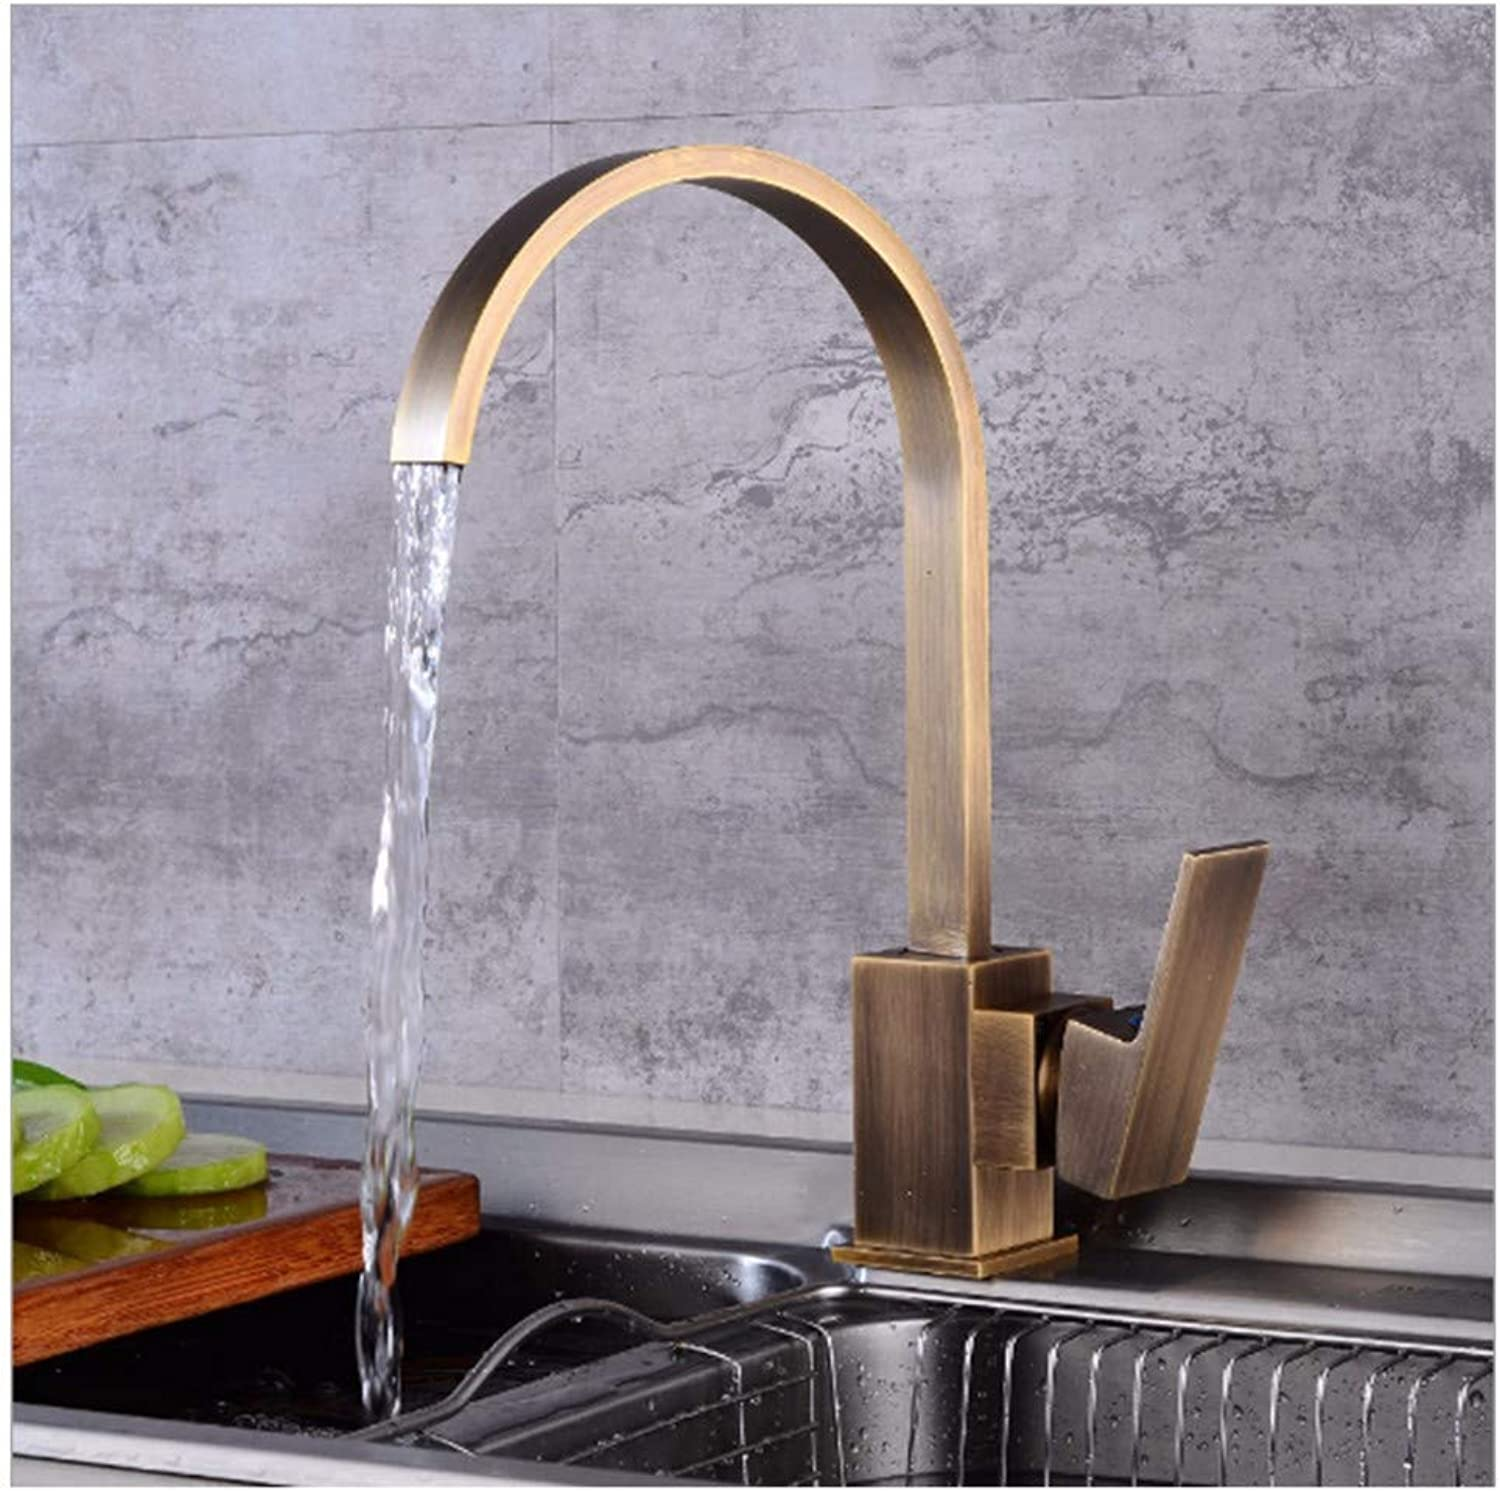 Faucet Retro Drawing Kitchen European Style Brass Faucet With Waterfall And Hose Pure Copper Vintage Curve High Water Tap Washbasin Mixer Basin Sink Bathroom Single Spout 1 Lever Handle